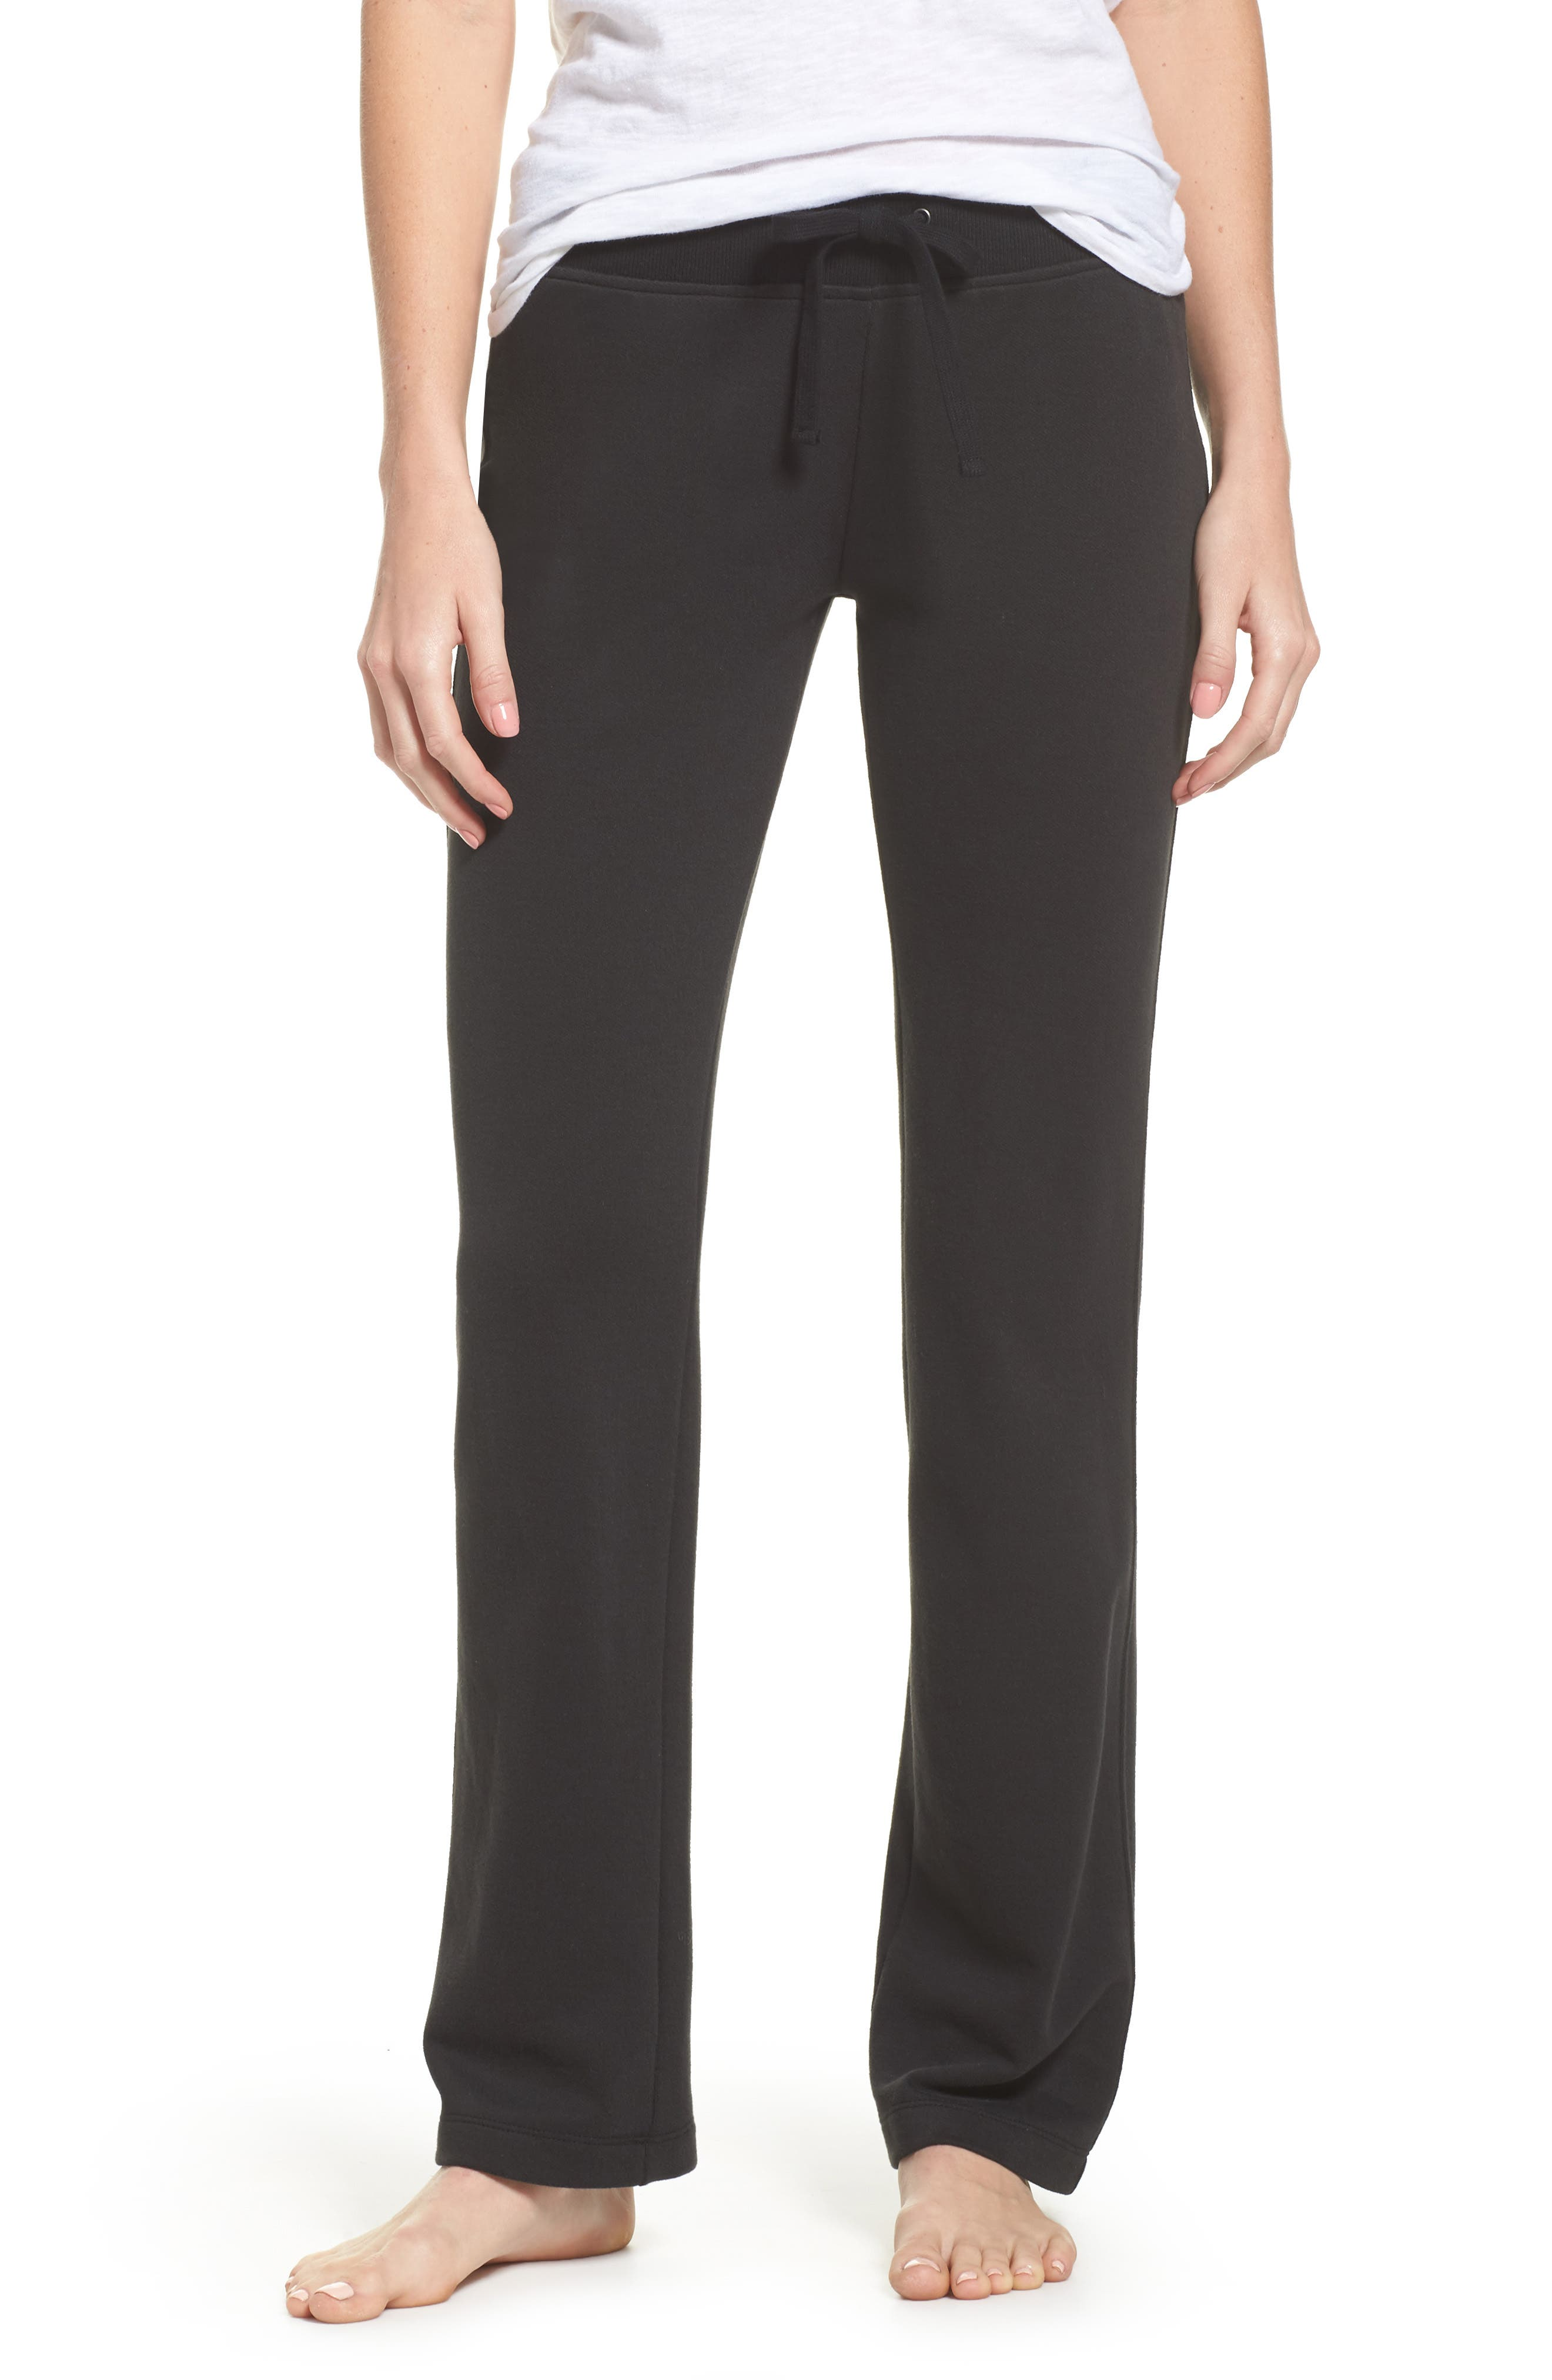 6577e19e5a Stay warm and cozy while you re off duty in these supersoft pajama pants  cut from lightweight double-knit fleece. Style Name  Ugg Penny Fleece Pants.